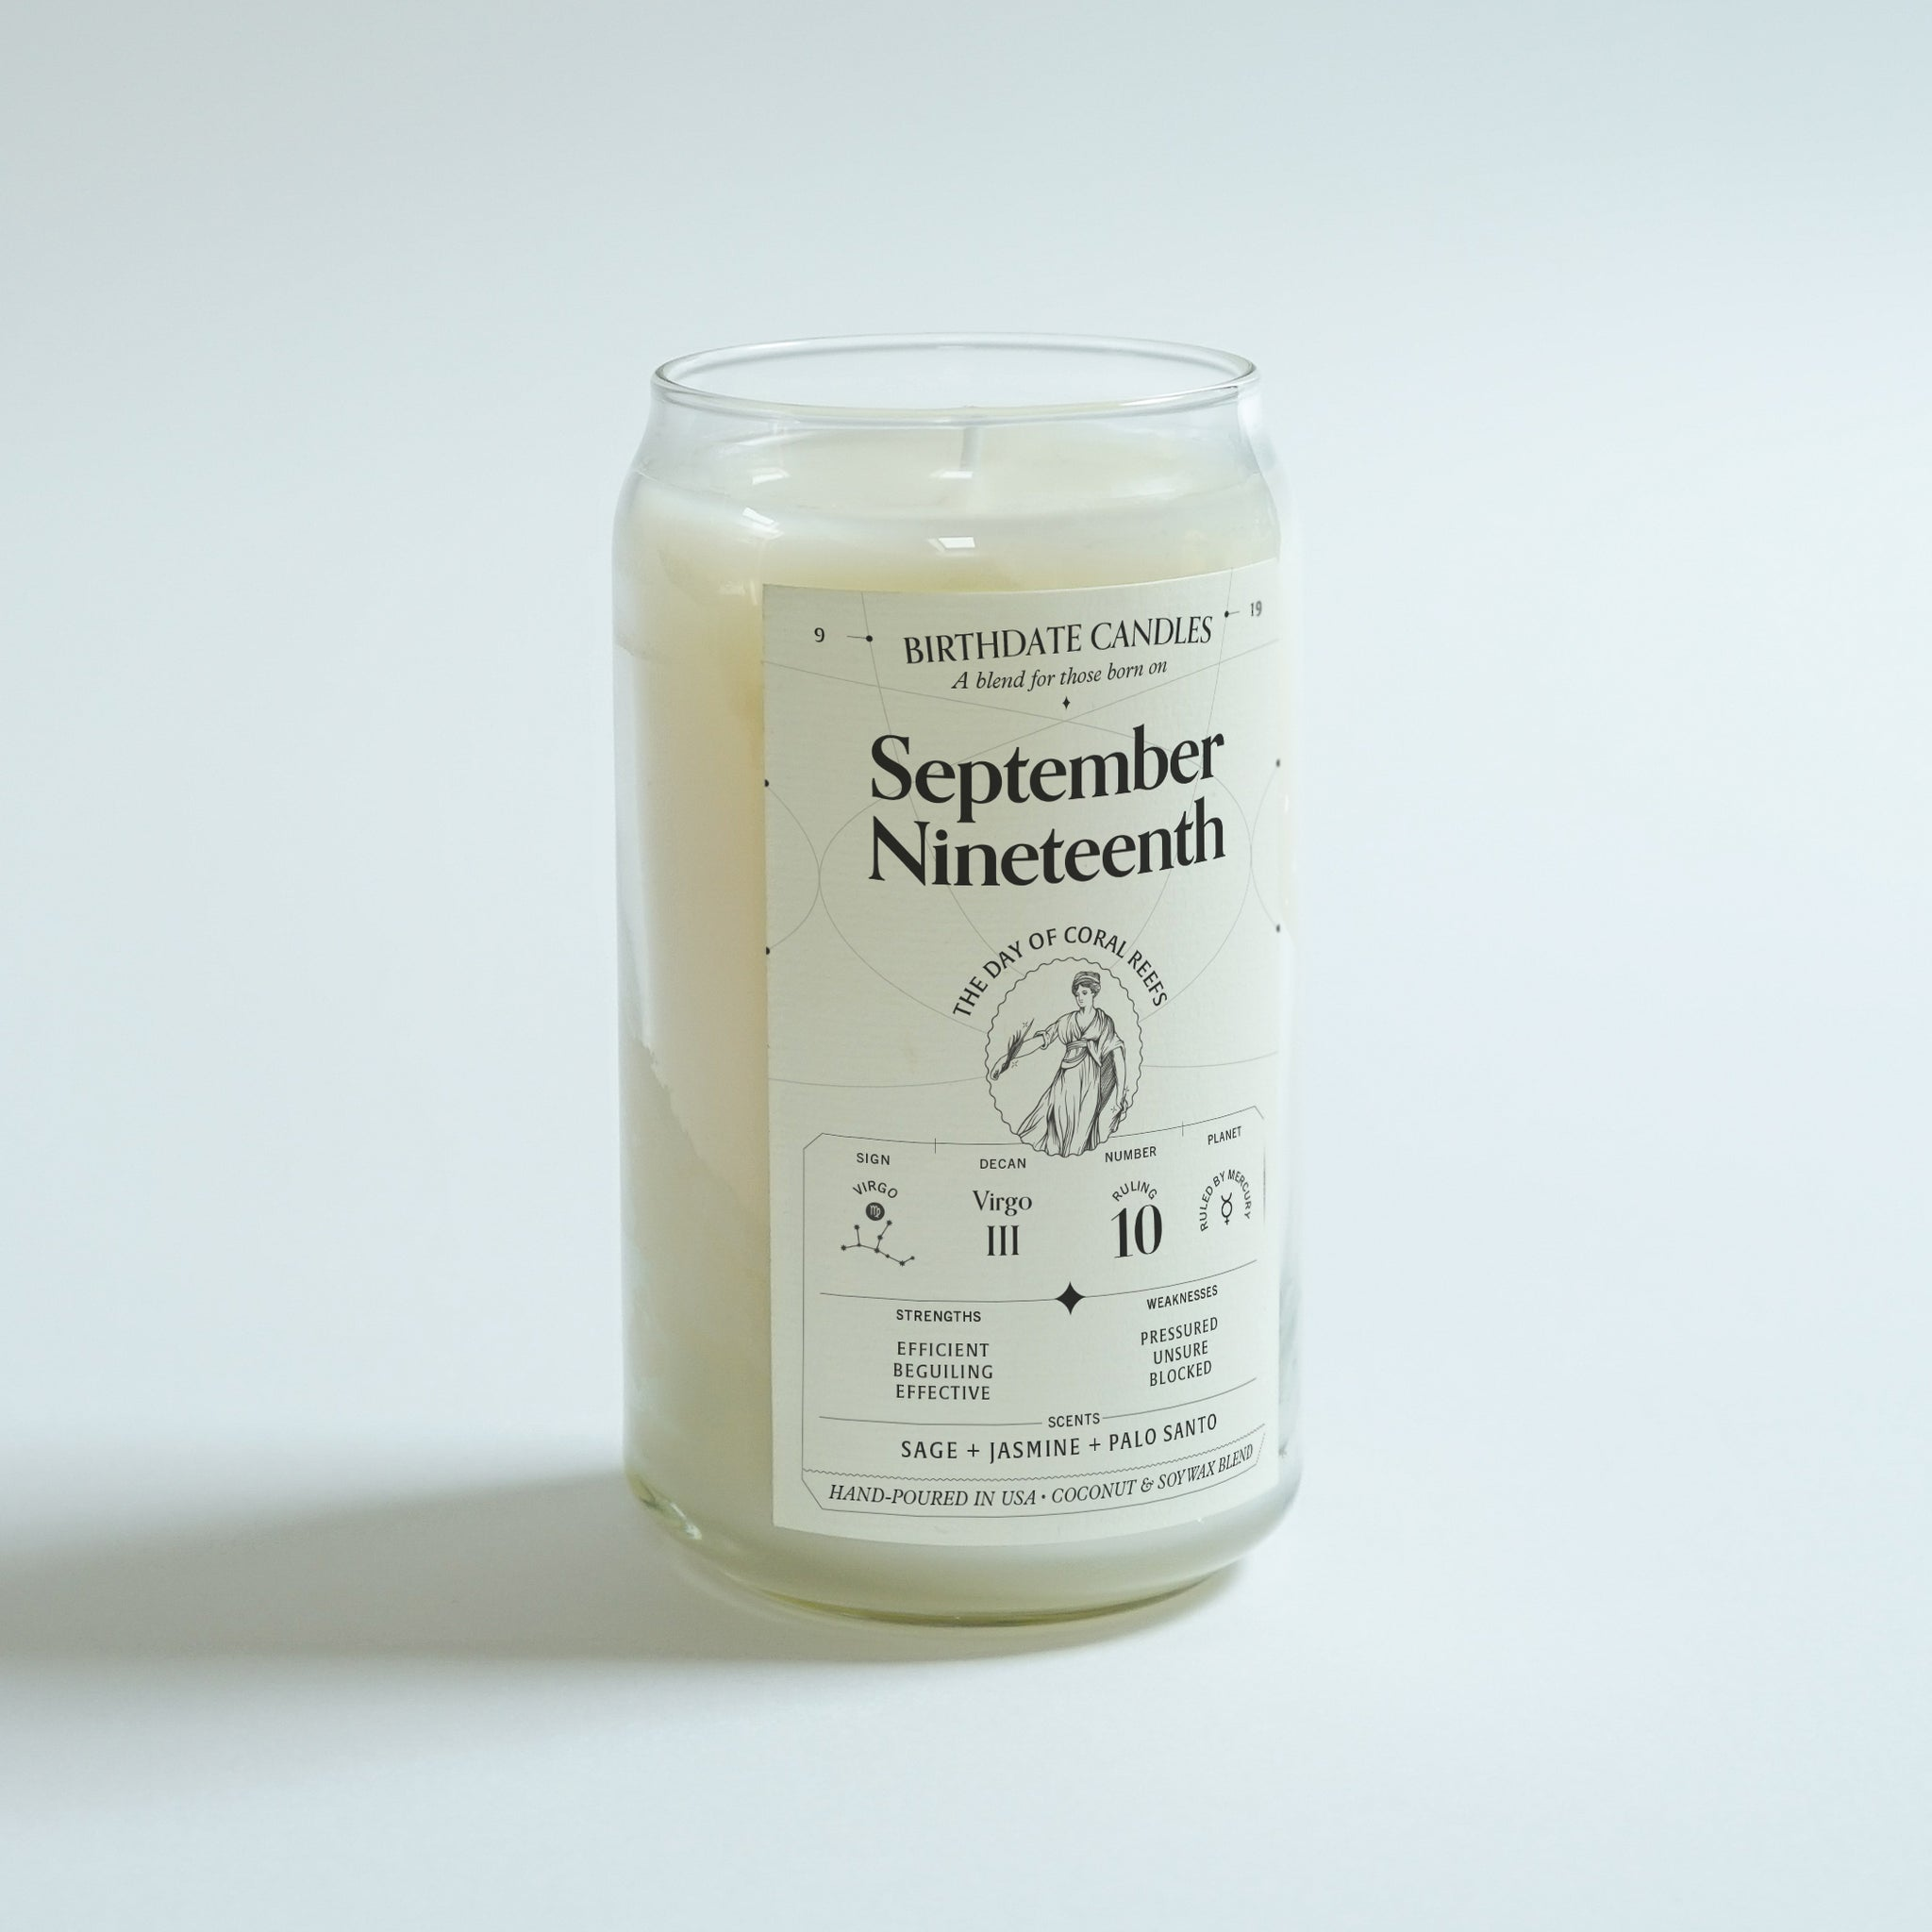 The September Nineteenth Birthday Candle